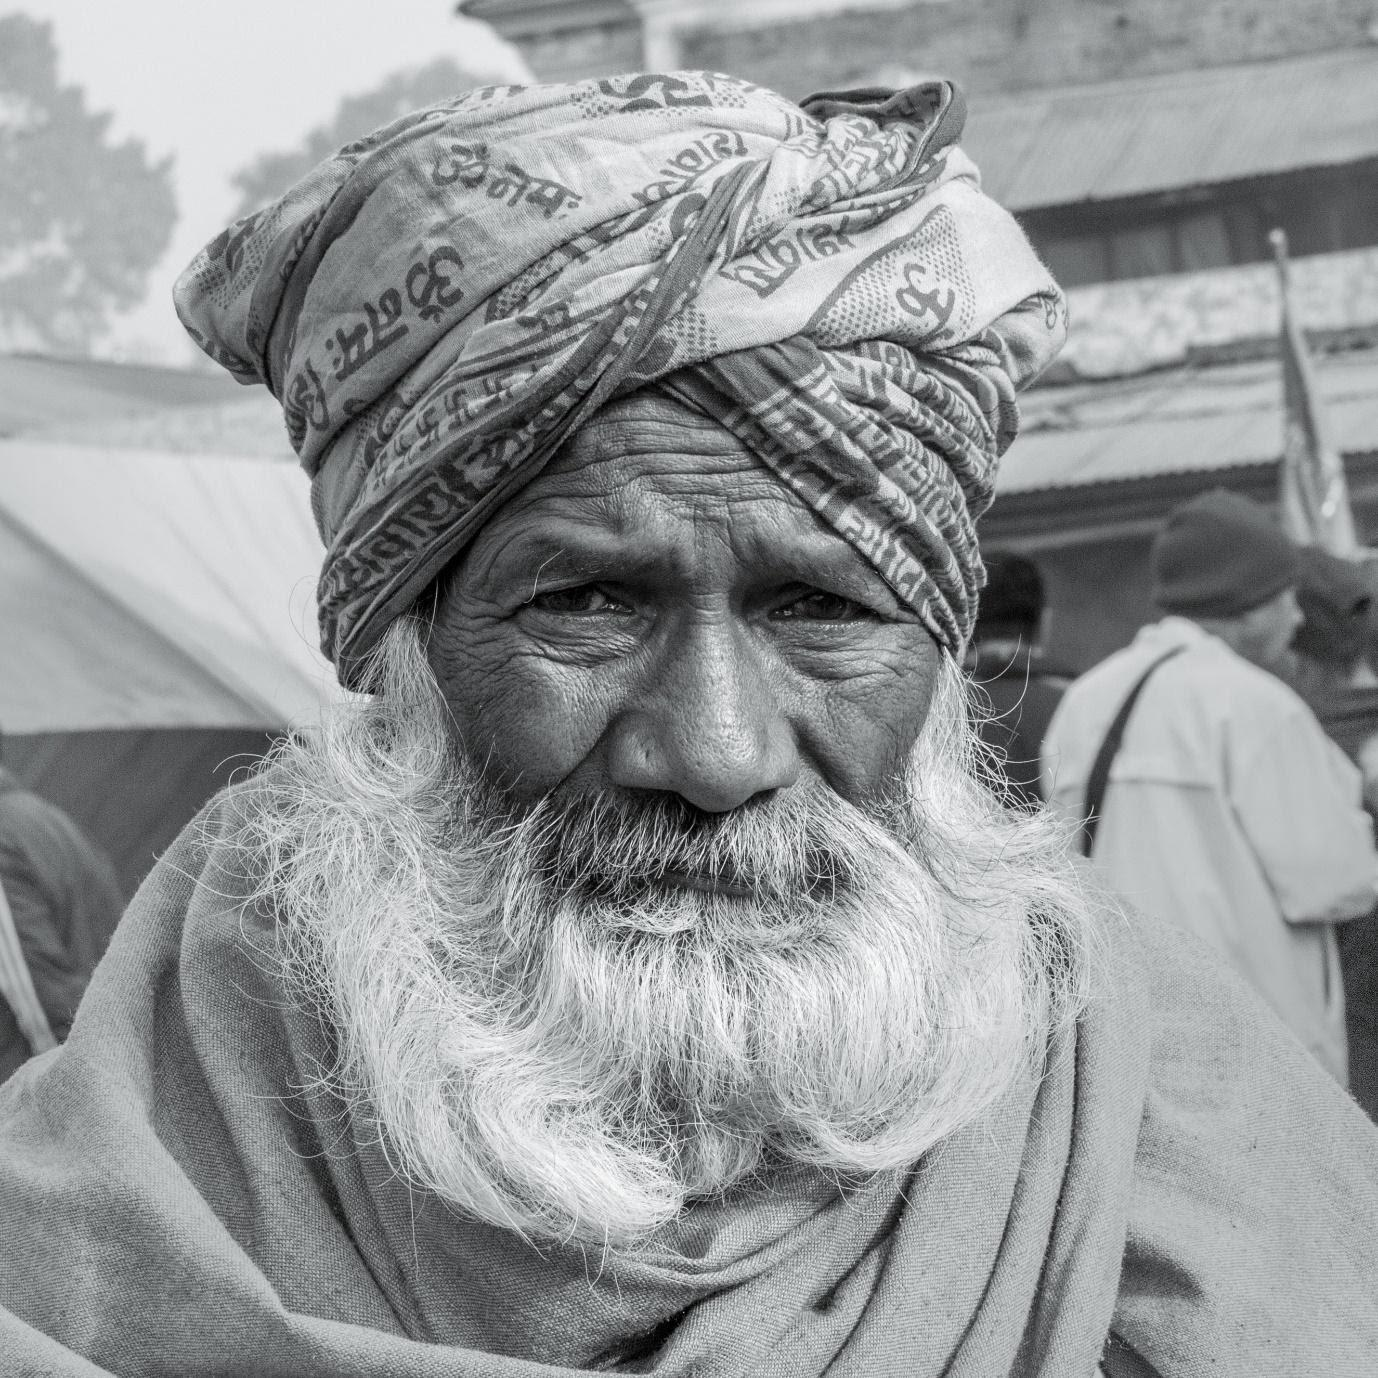 A picture containing person, person, outdoor, turban  Description automatically generated